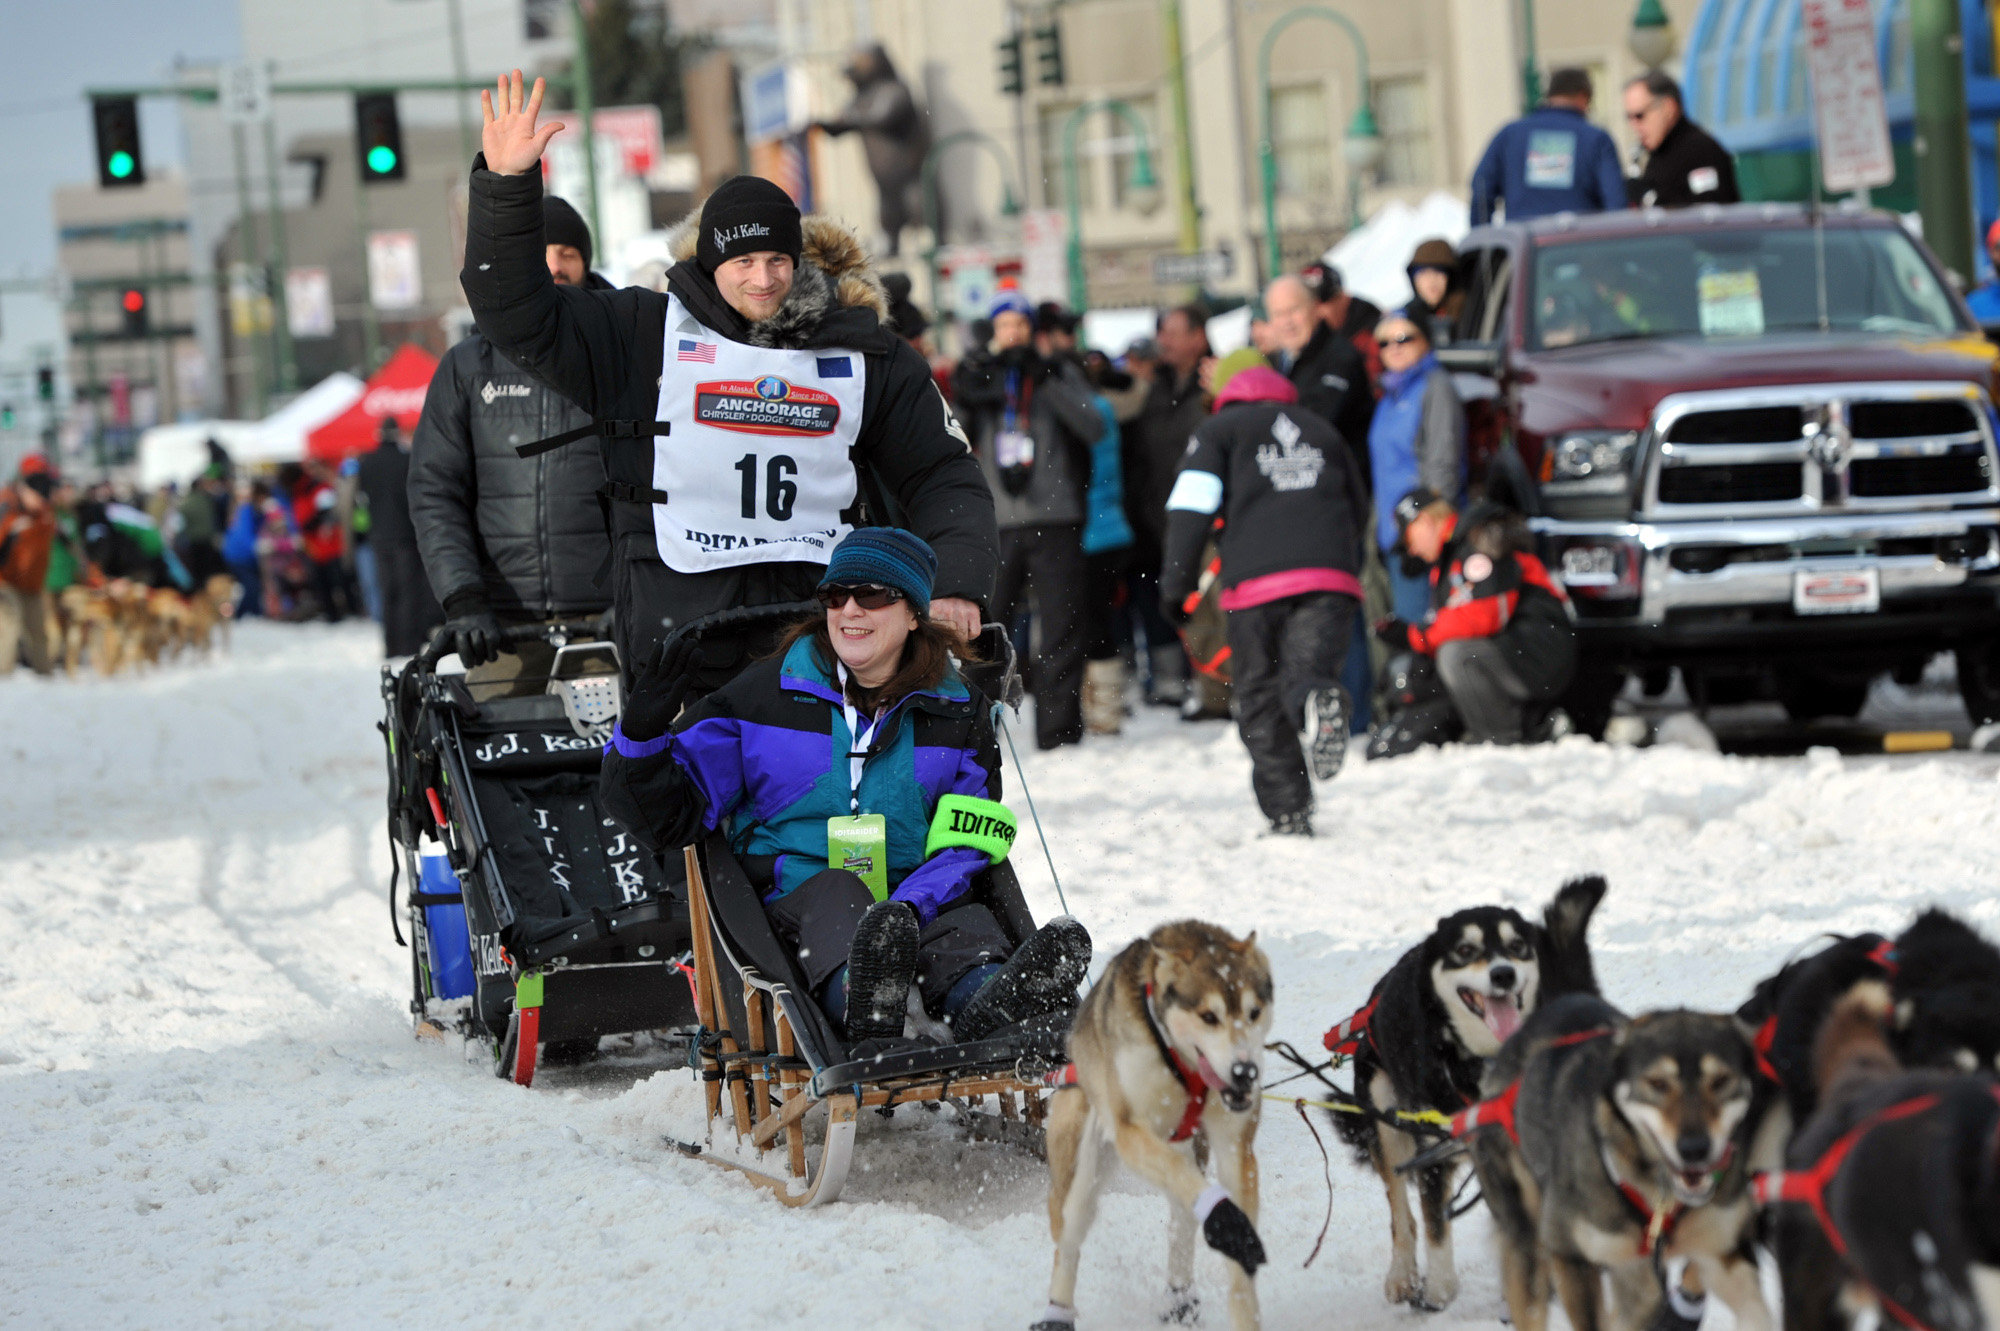 Soldiers marked the way for first full-scale Iditarod race